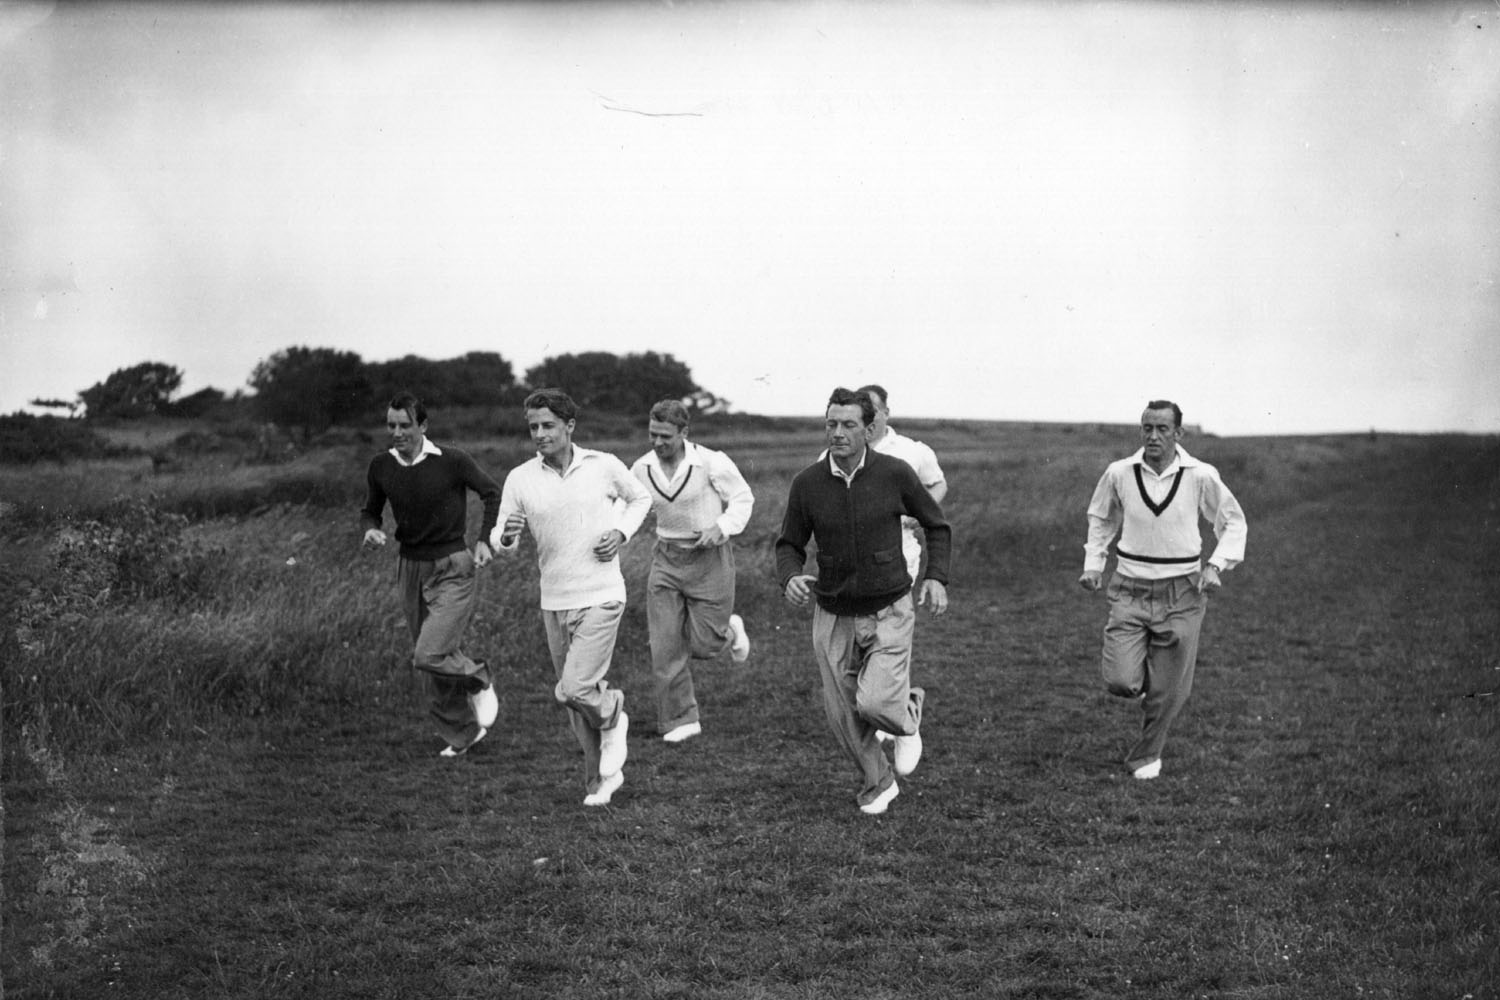 British tennis players Fred Perry and Dan Maskell, along with other members of the 1936 Davis Cup team, being trained on Beachy Head, Eastbourne, by the Arsenal football club coach Tom Whittaker.